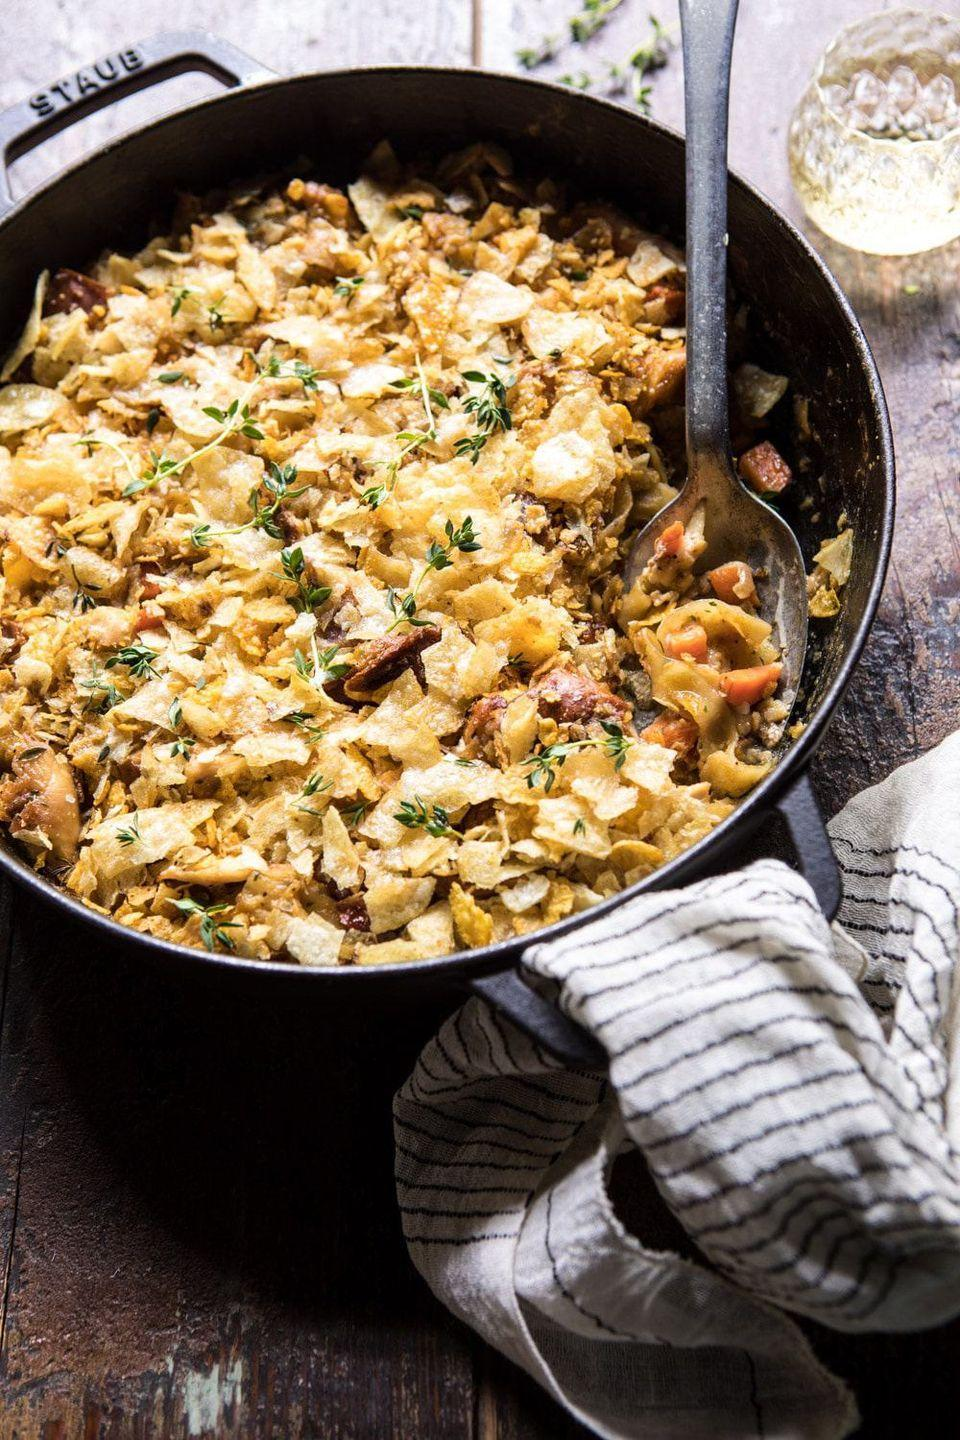 """<p>This casserole is just like a bowl of chicken noodle soup, except it's even more delicious: It's rich, cheesy, and crunchy on top. </p><p><strong>Get the recipe at <a href=""""https://www.halfbakedharvest.com/homemade-chicken-noodle-casserole/"""" rel=""""nofollow noopener"""" target=""""_blank"""" data-ylk=""""slk:Half Baked Harvest"""" class=""""link rapid-noclick-resp"""">Half Baked Harvest</a>.</strong> </p>"""